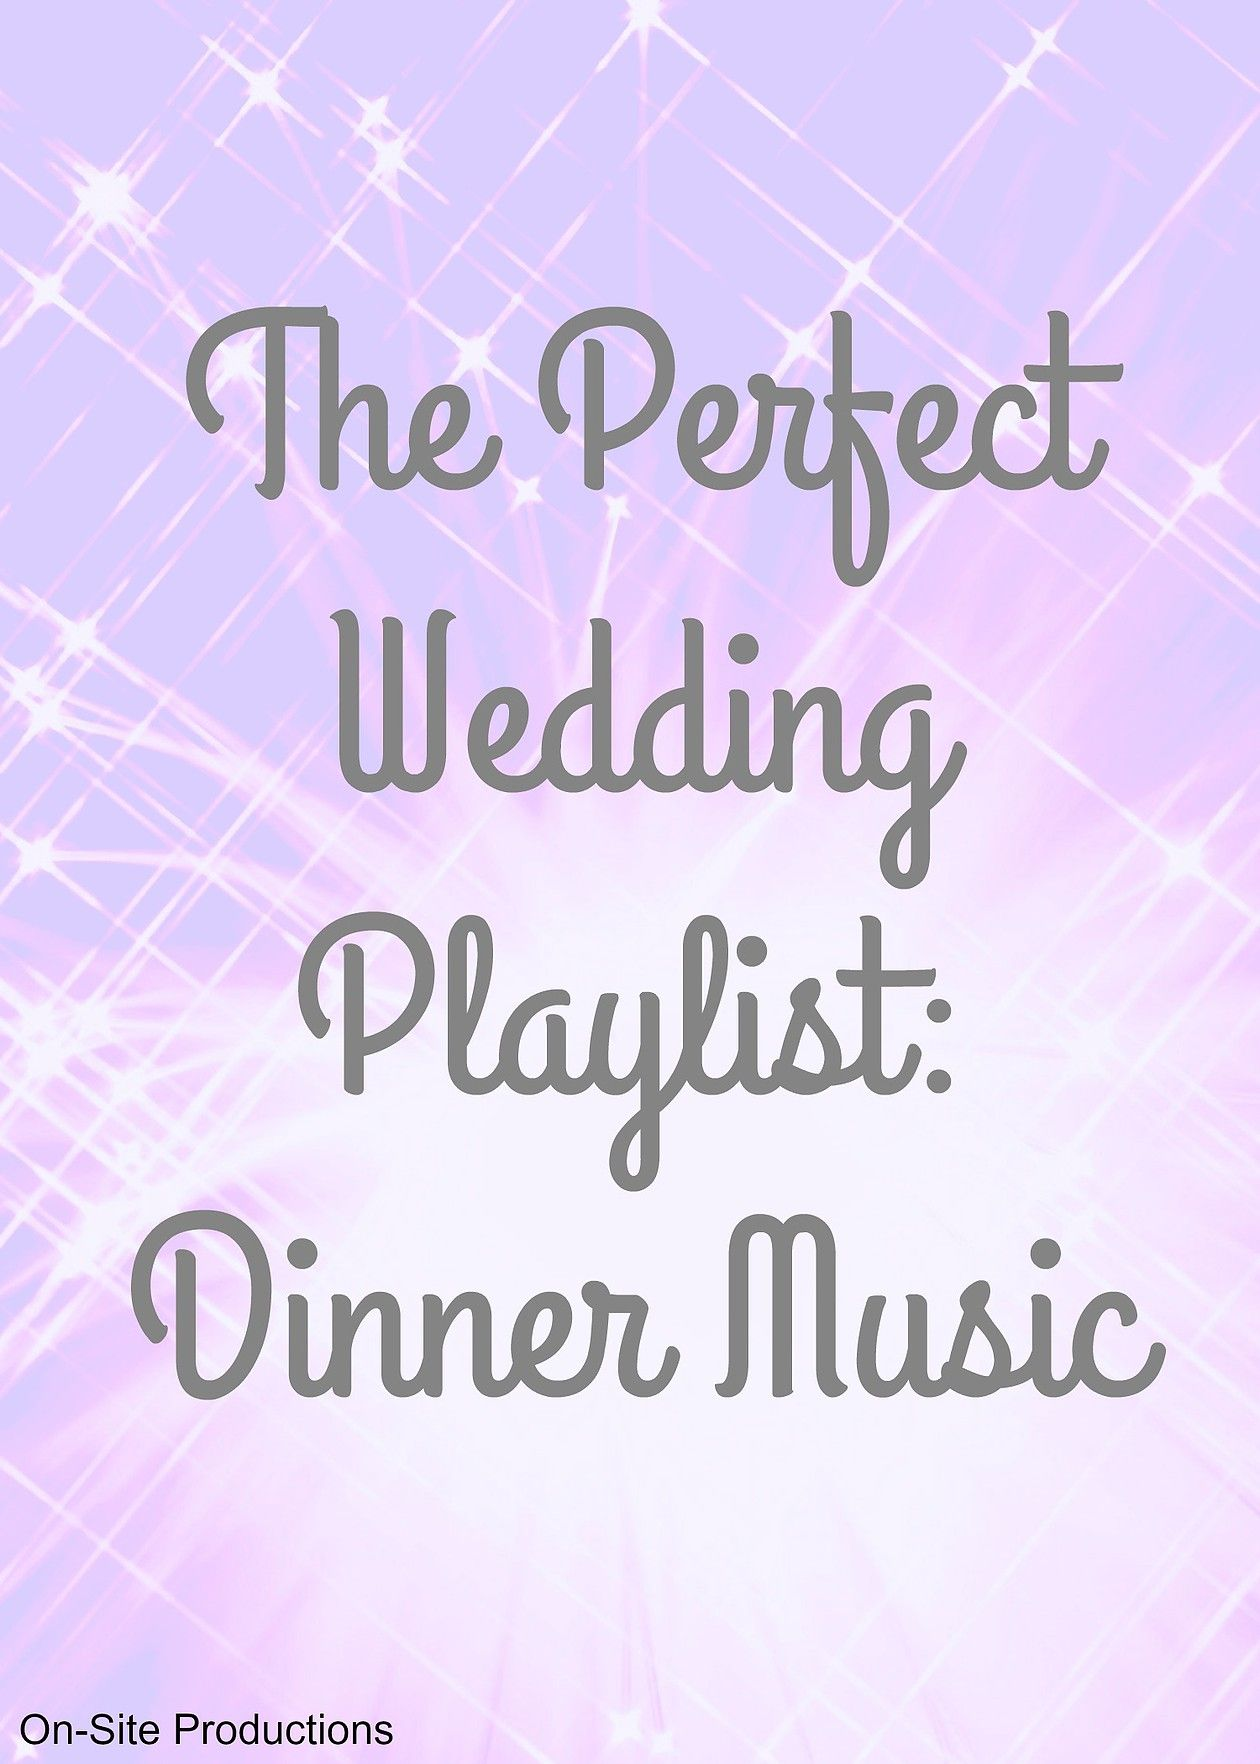 Are You Looking For A Relaxing Playlist The Dinner Portion Of Your Wedding This